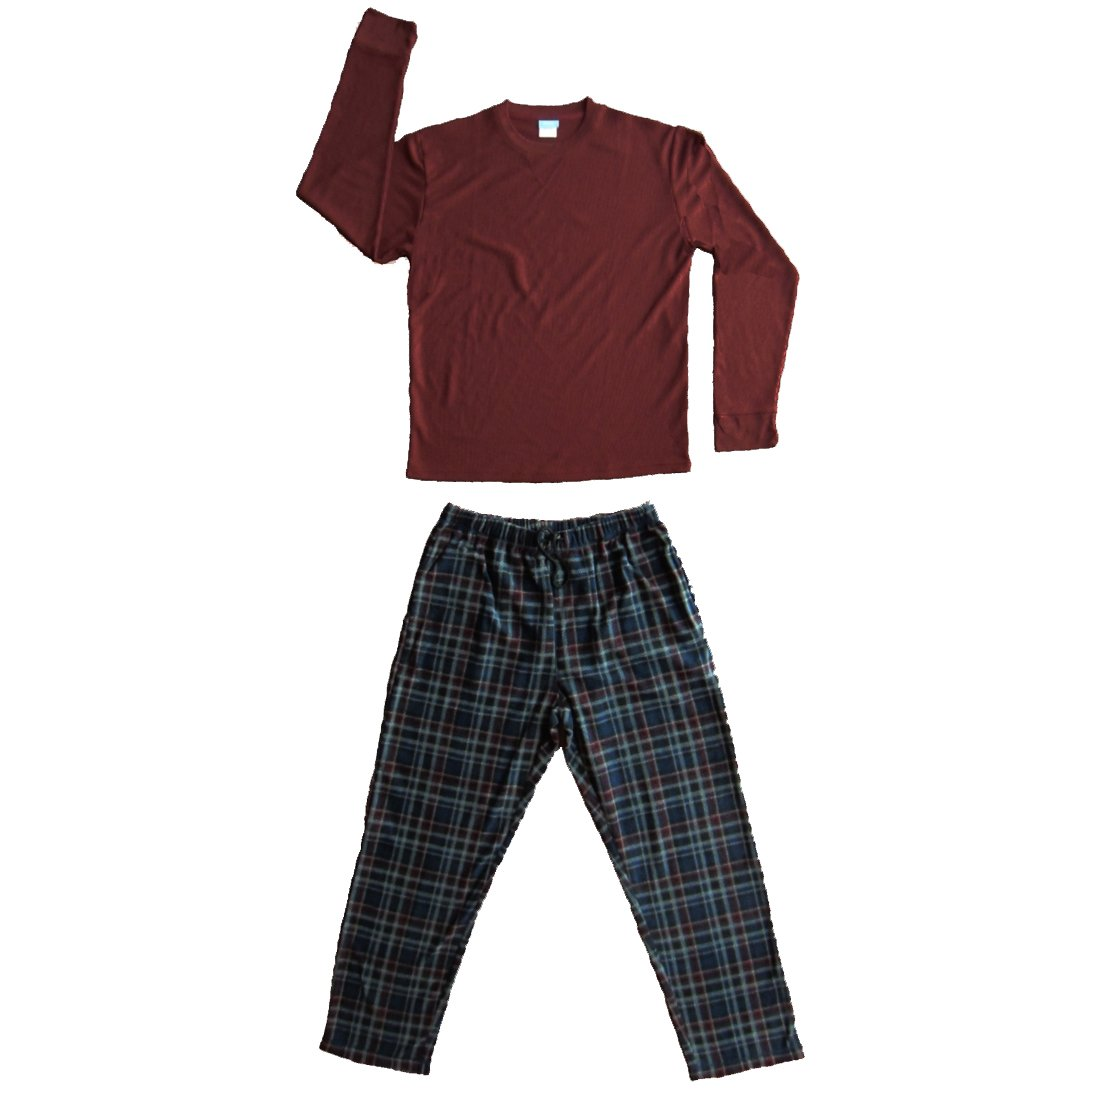 Mens 2 Pc Thermal Top Fleece Pants Pajamas Set Large, Dark Red TM25000